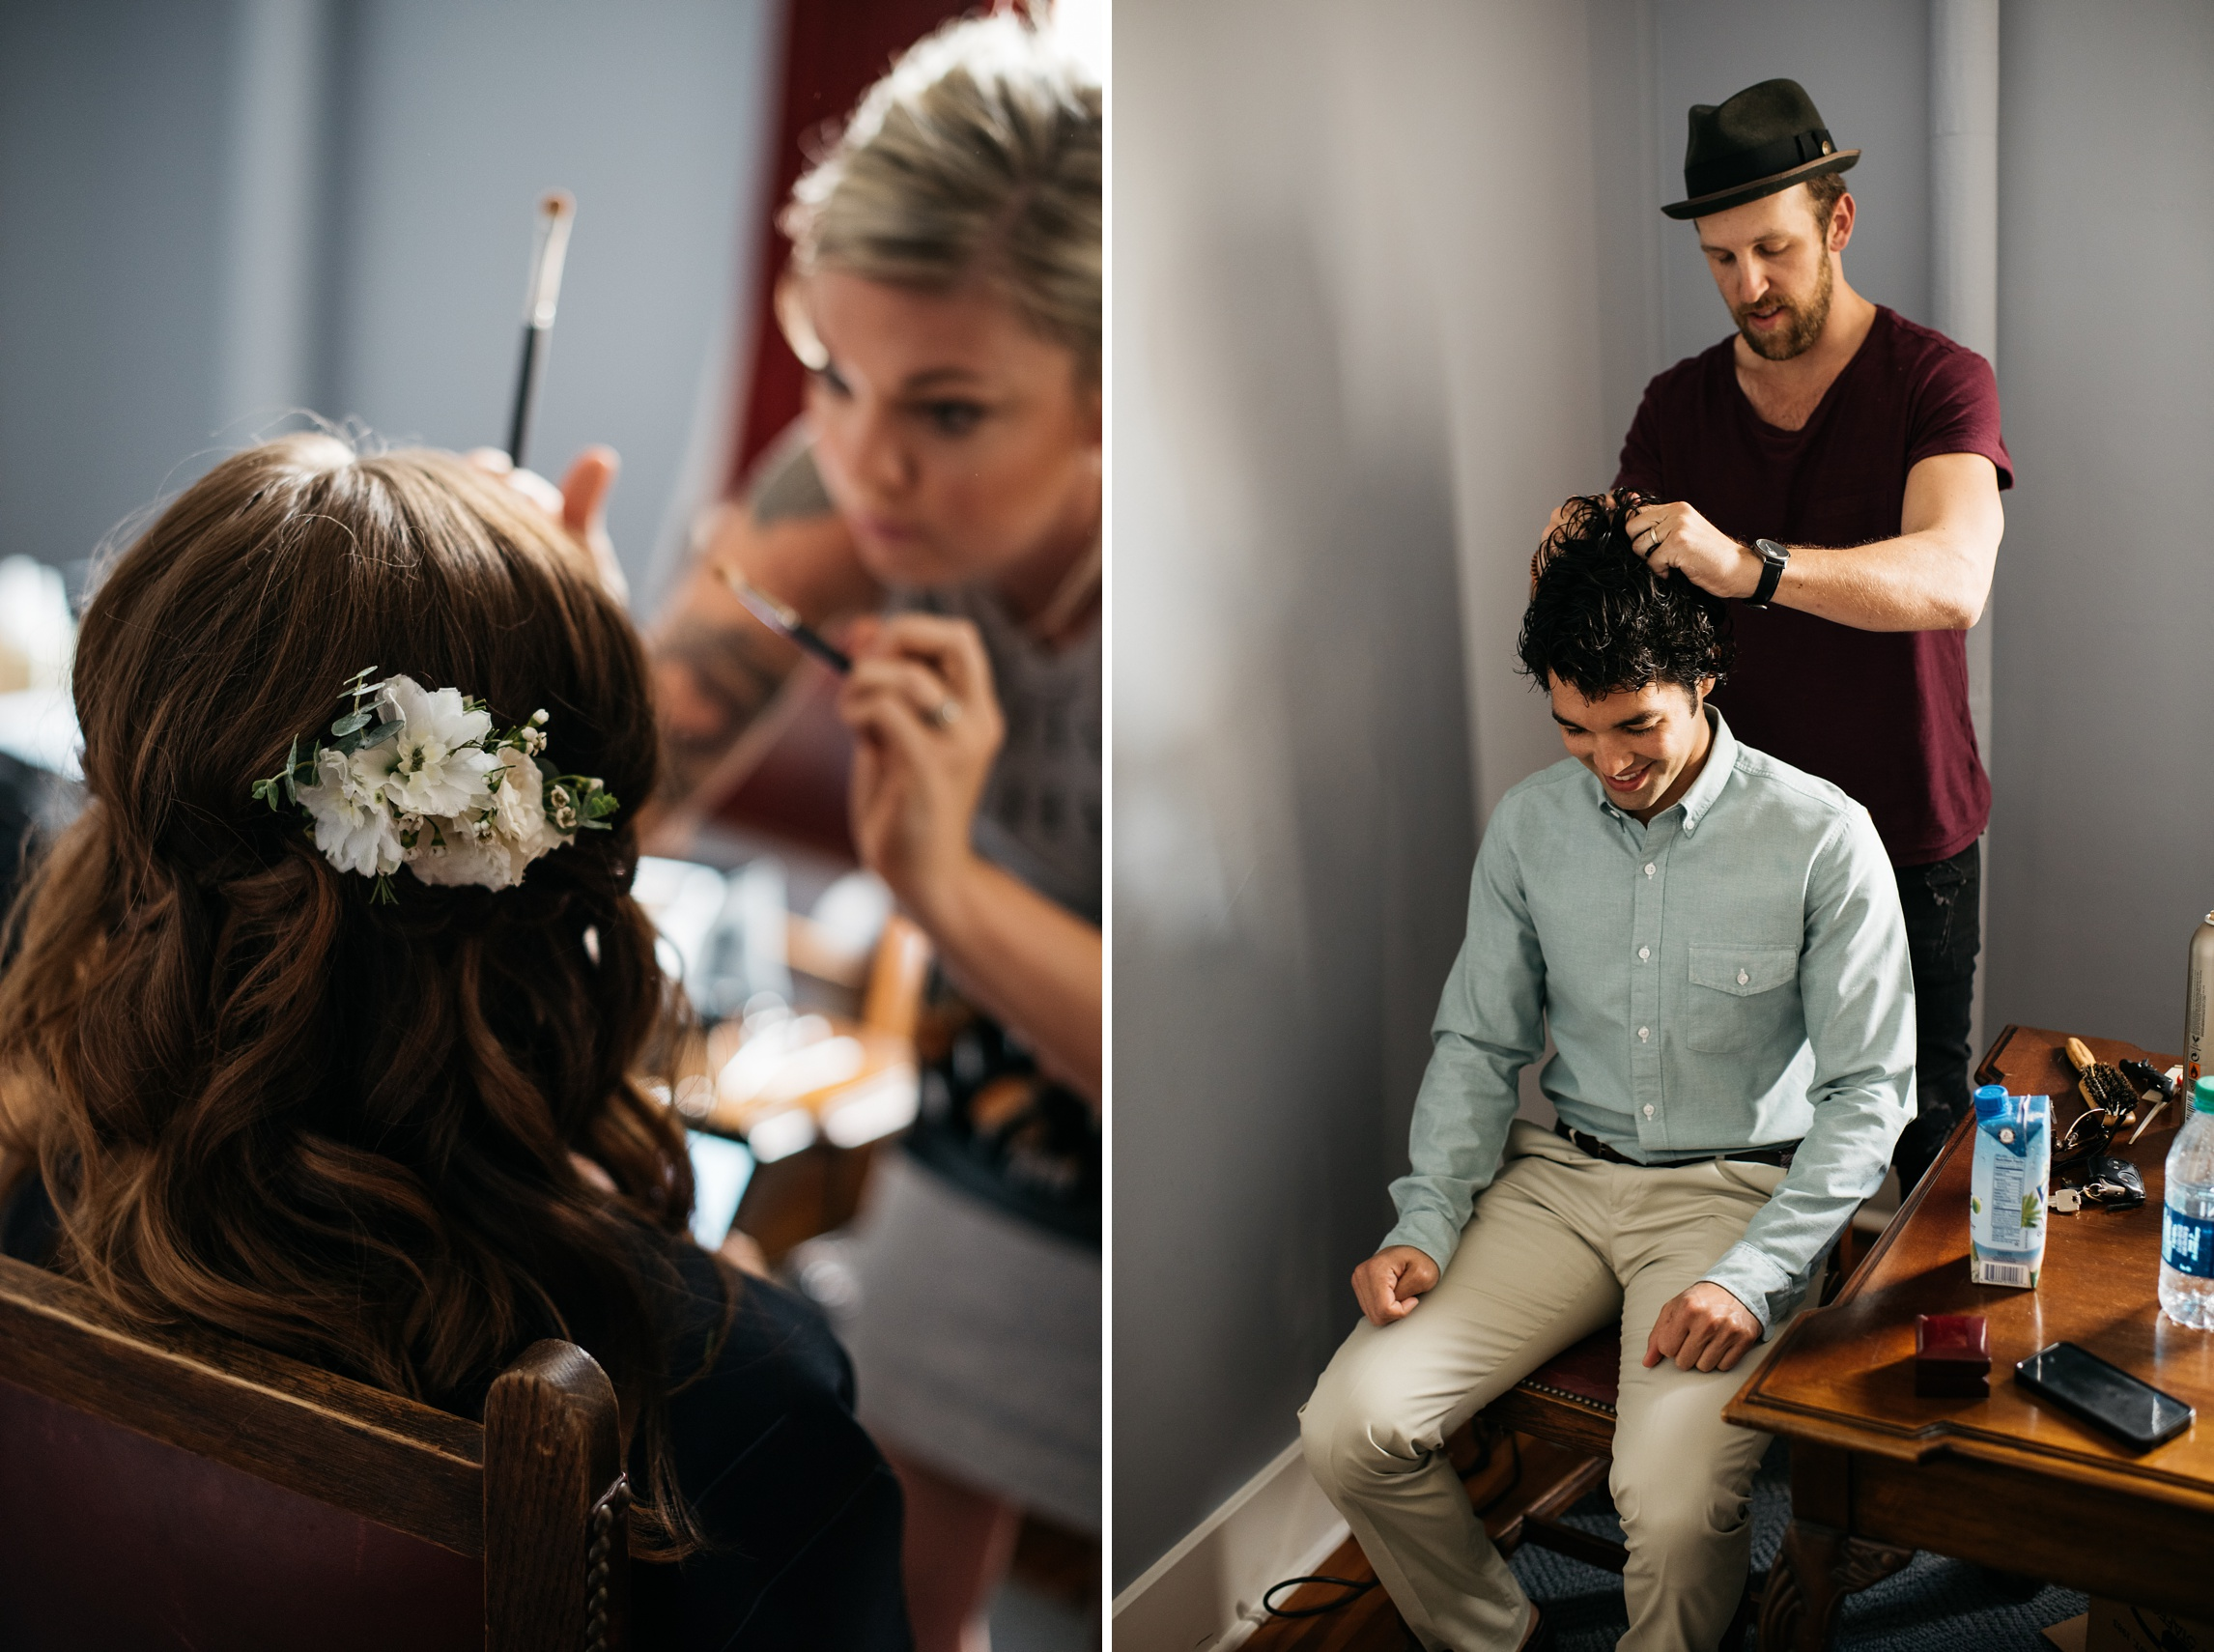 A bride and groom get ready for their wedding day. Wedding photography by Sonja Salzburg of Sonja K Photography.